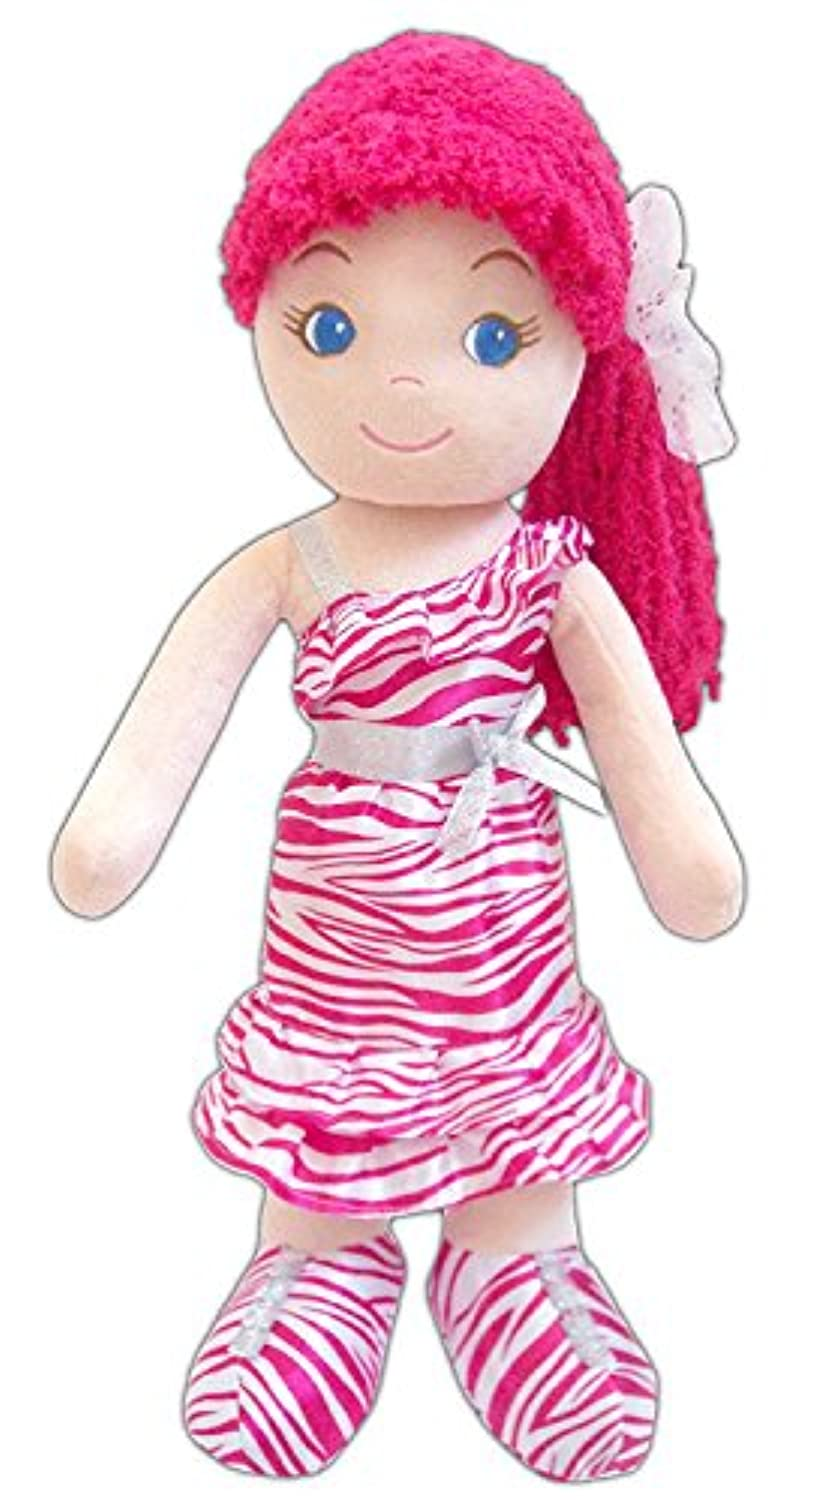 GirlznDollz Leila Glam Girl - Zebra Print Baby Doll Dark Pink/White [並行輸入品]